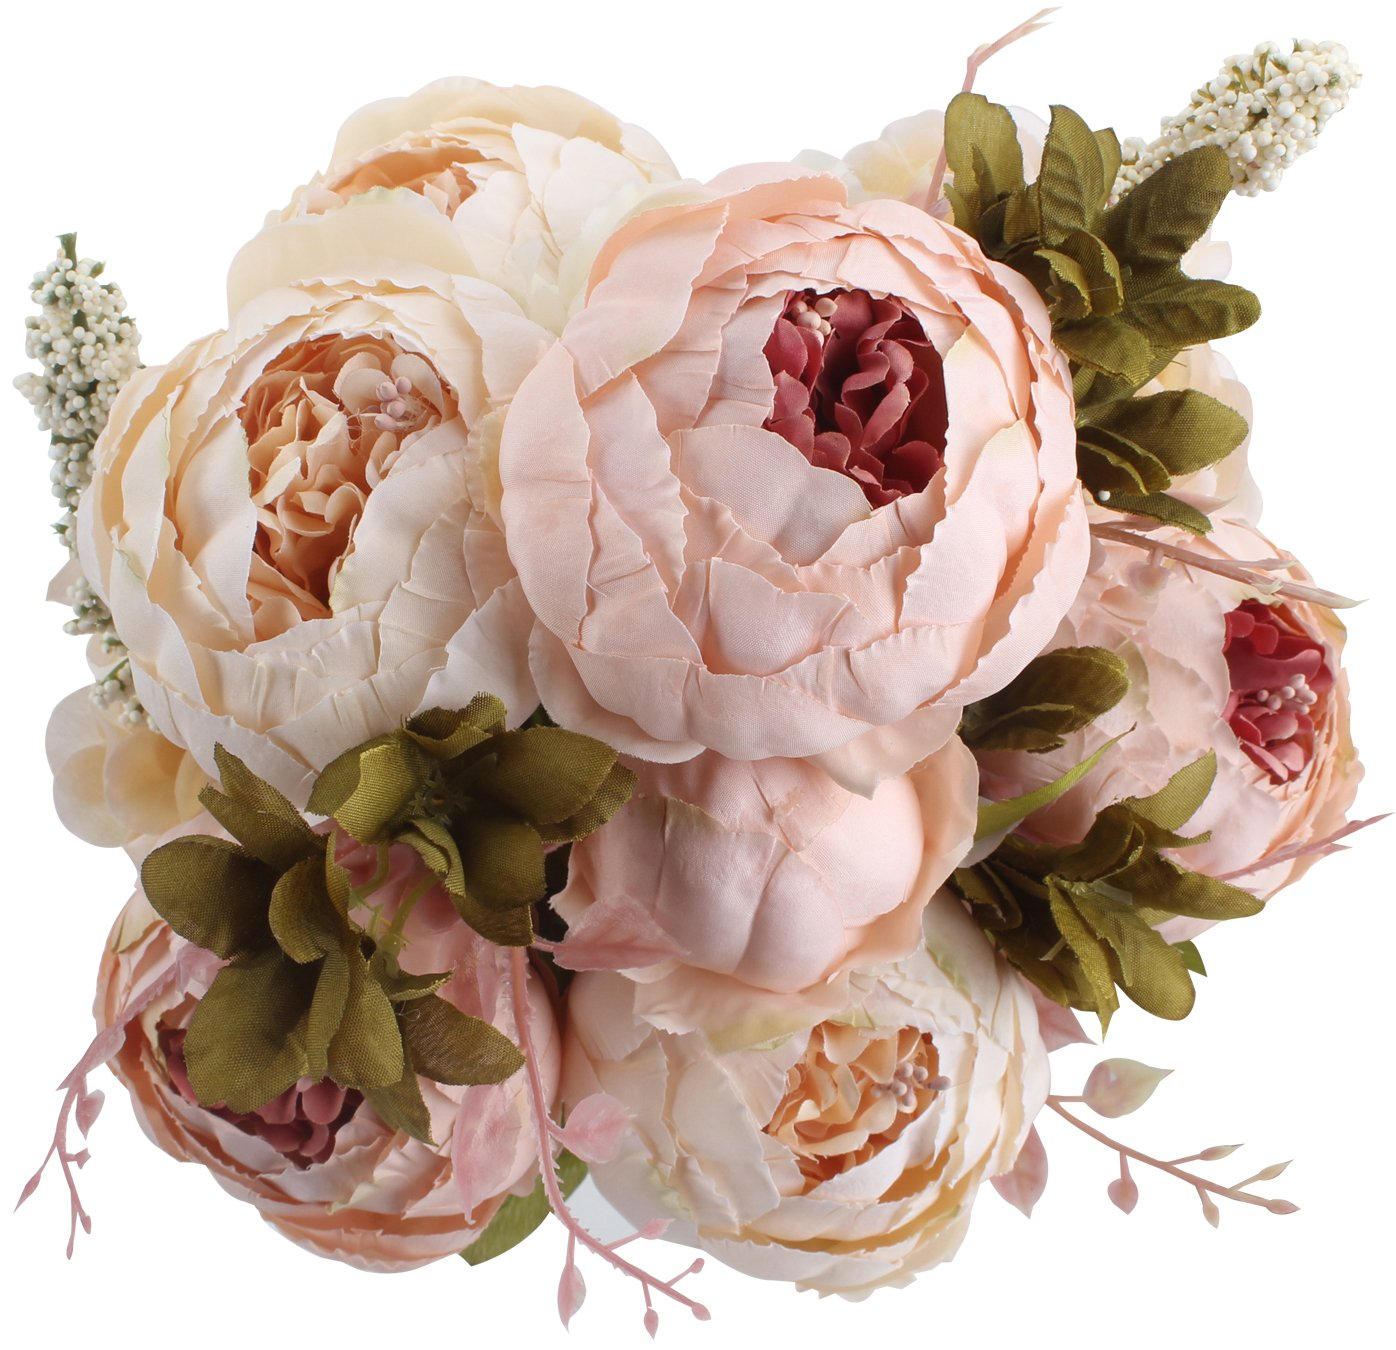 Amazon duovlo fake flowers vintage artificial peony silk amazon duovlo fake flowers vintage artificial peony silk flowers wedding home decorationpack of 1 light pink home kitchen mightylinksfo